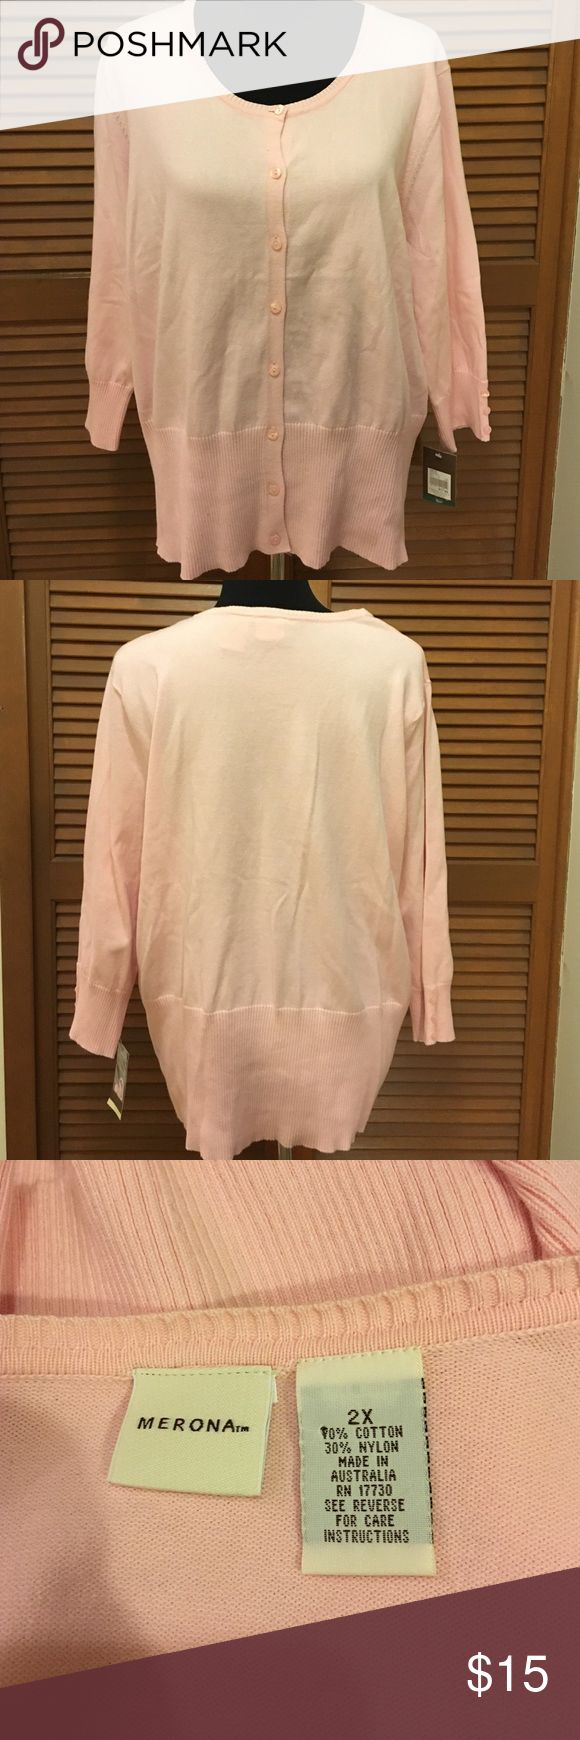 NWT Merona plus size pink cardigan sweater 2x Brand-new with tags! Has three-quarter length sleeve's. 70% cotton 30% nylon. Merona Sweaters Cardigans